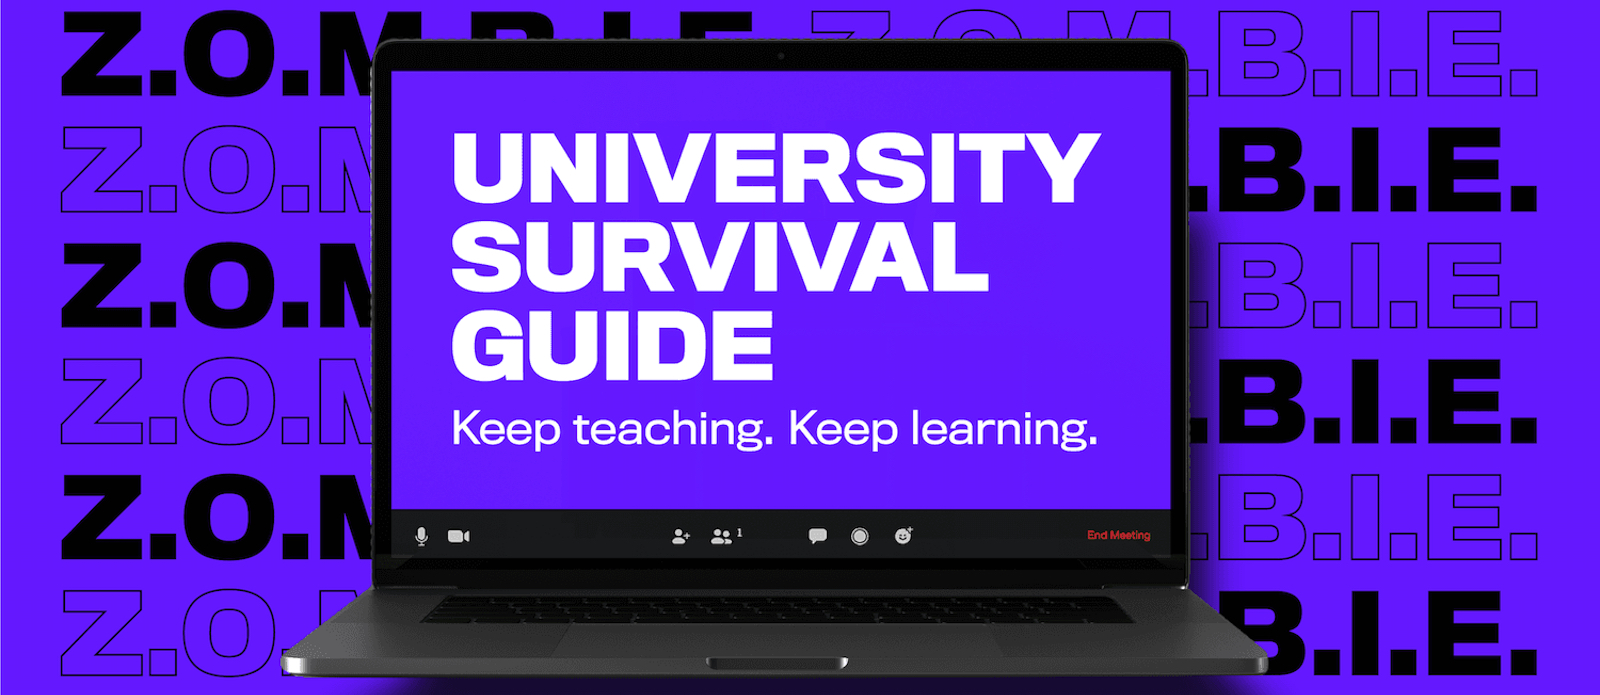 Teaching Strategies for Professors Transitioning Classes to an Online Environment - Image of a Compuer with the words: University Survival Guide - Keep Teaching. Keep Learning.